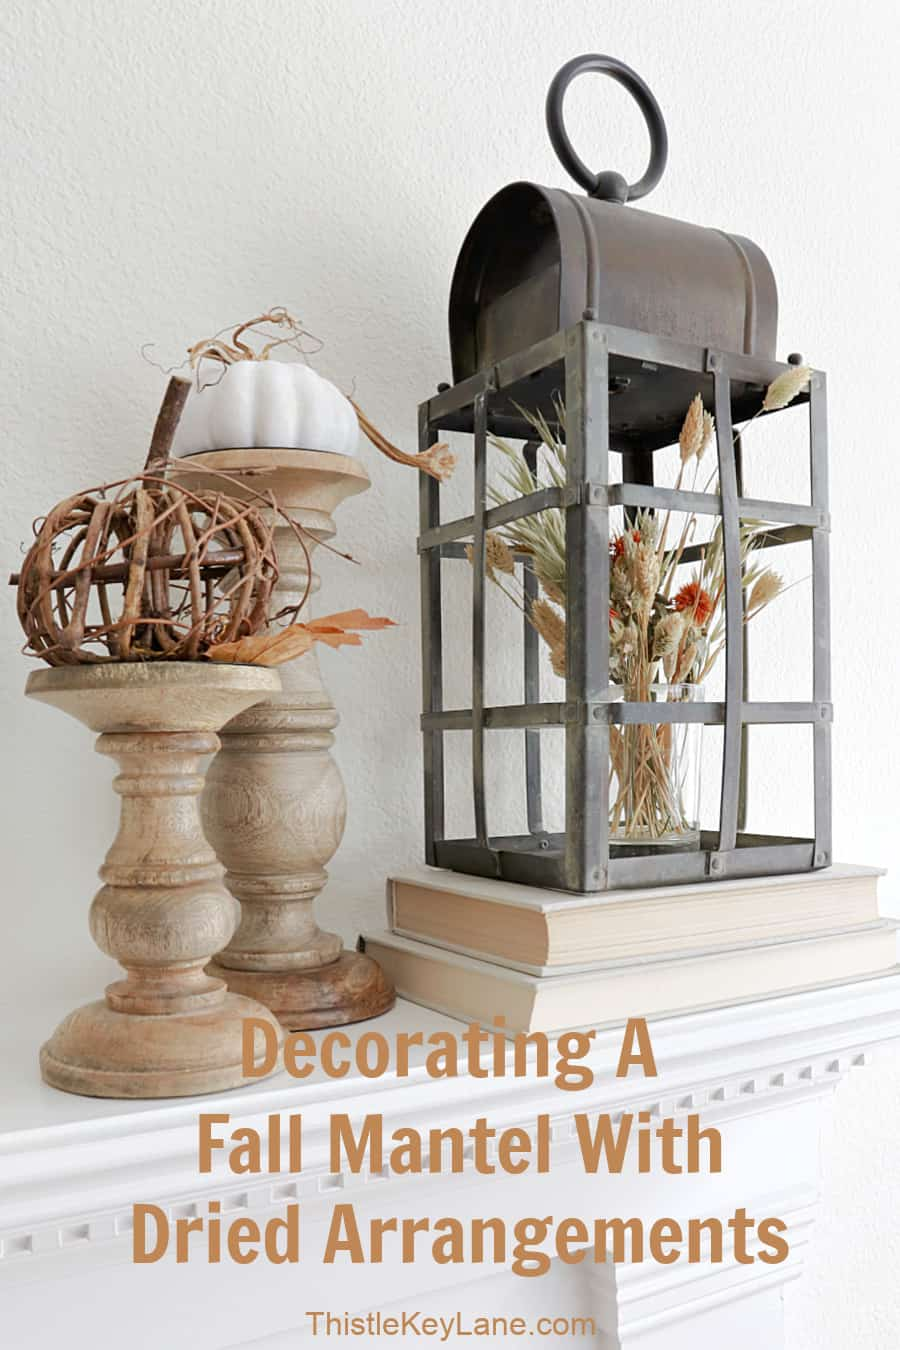 Decorating A Fall Mantel With Dried Arrangements.